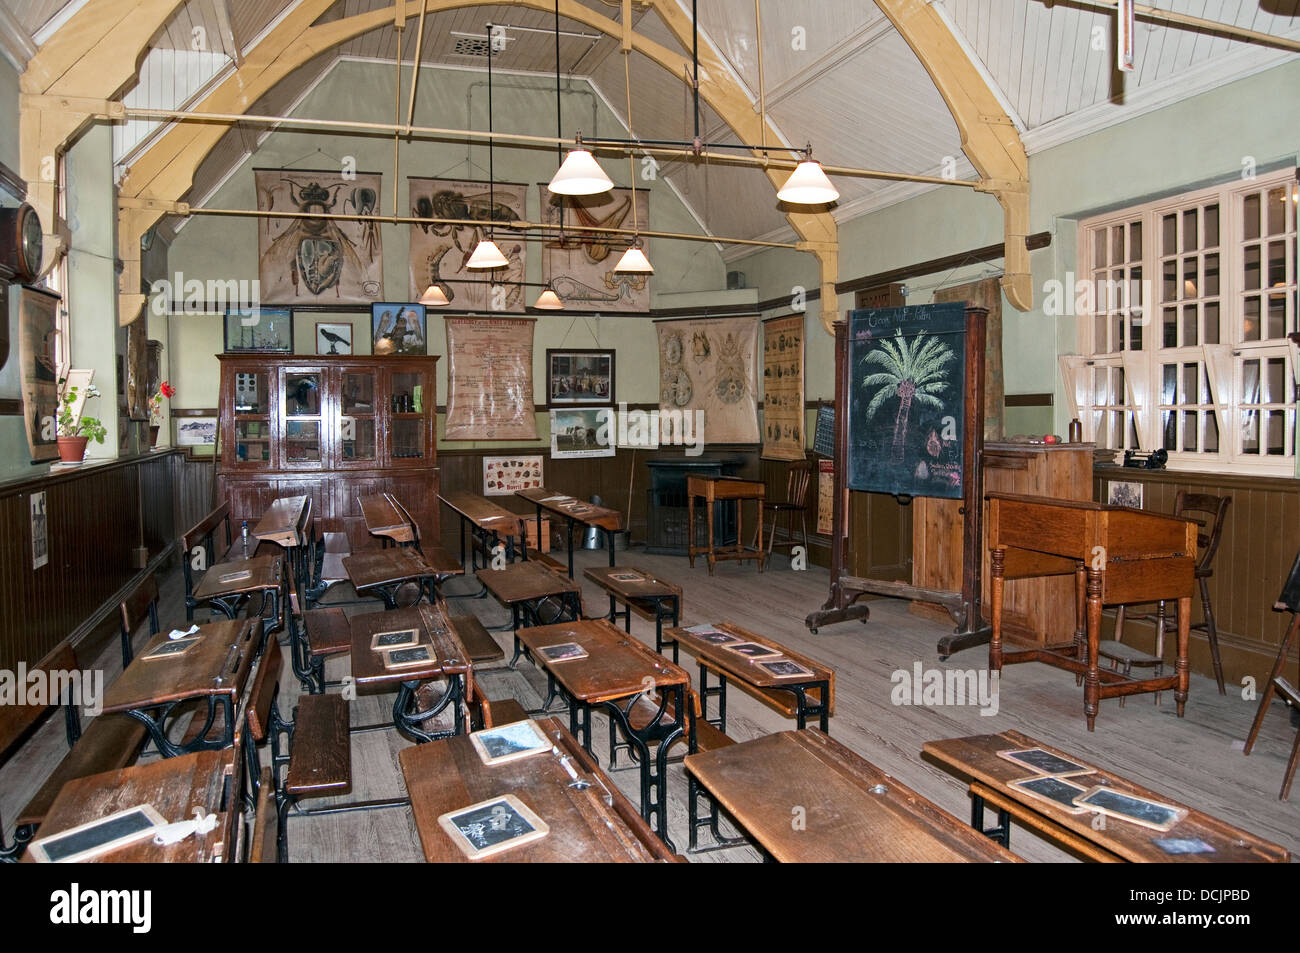 Edwardian/Victorian schoolroom at the North of England Open Air Museum, Beamish, Durham County, England, UK. - Stock Image